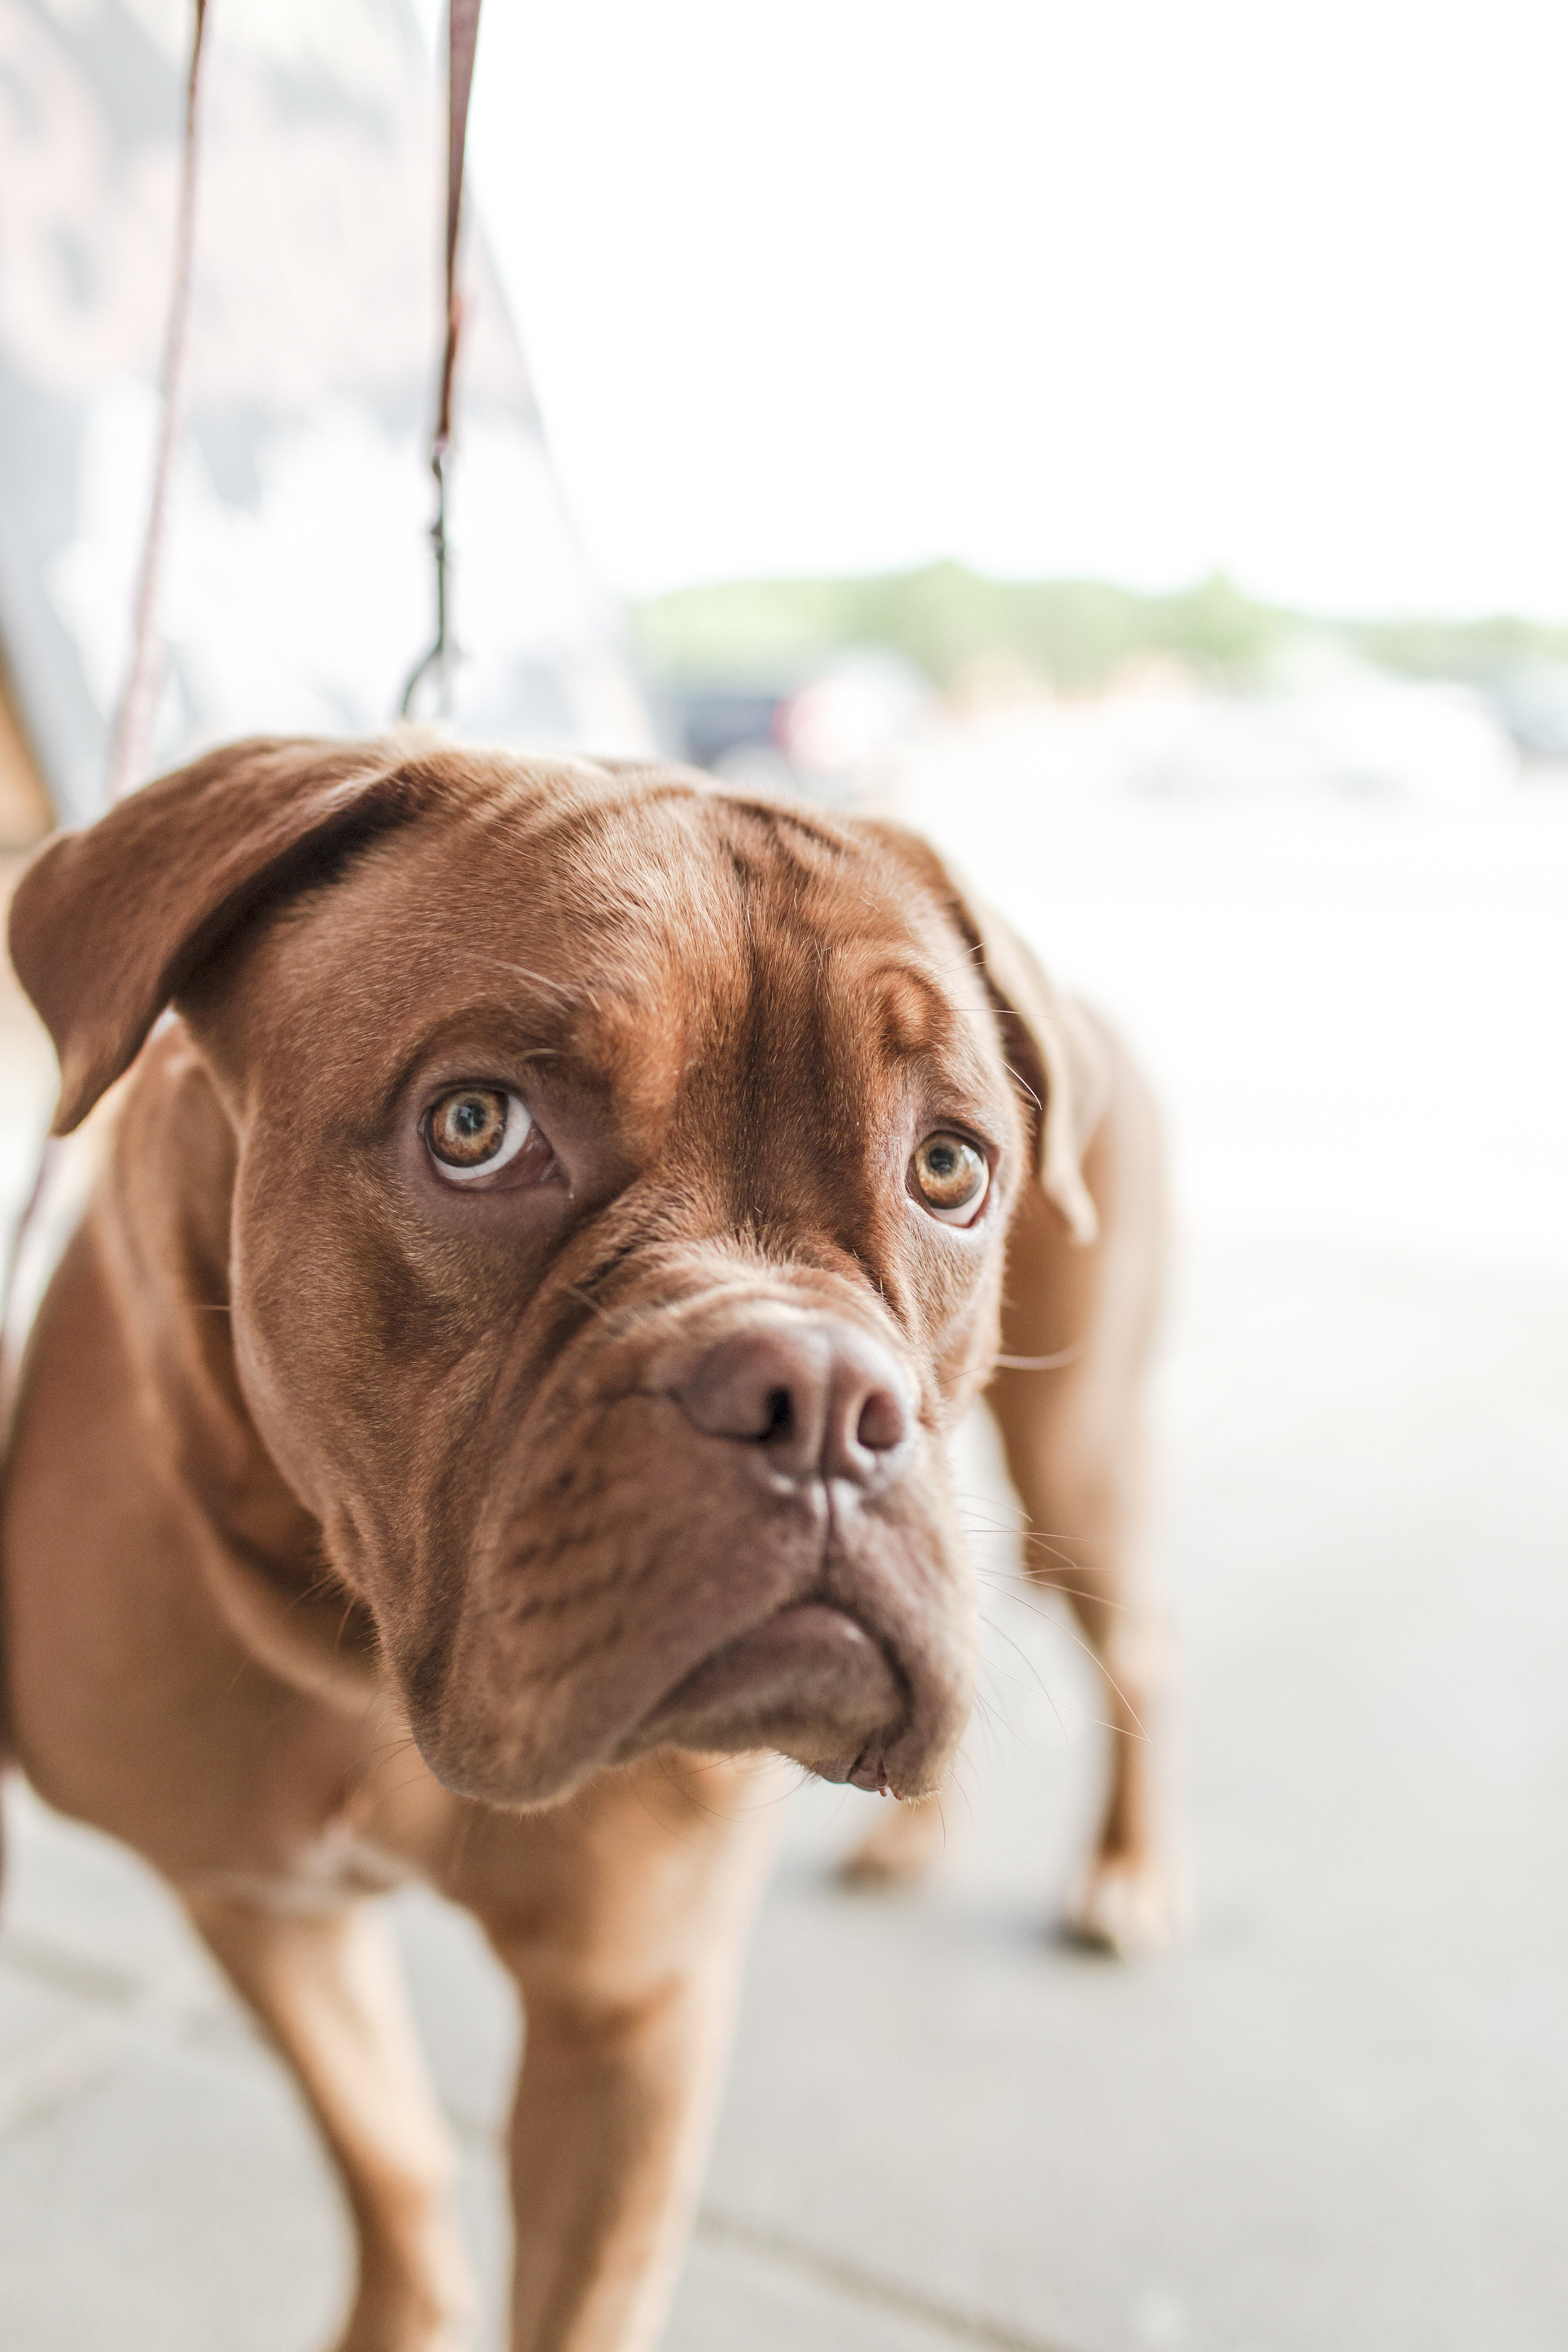 Pet stains and odors